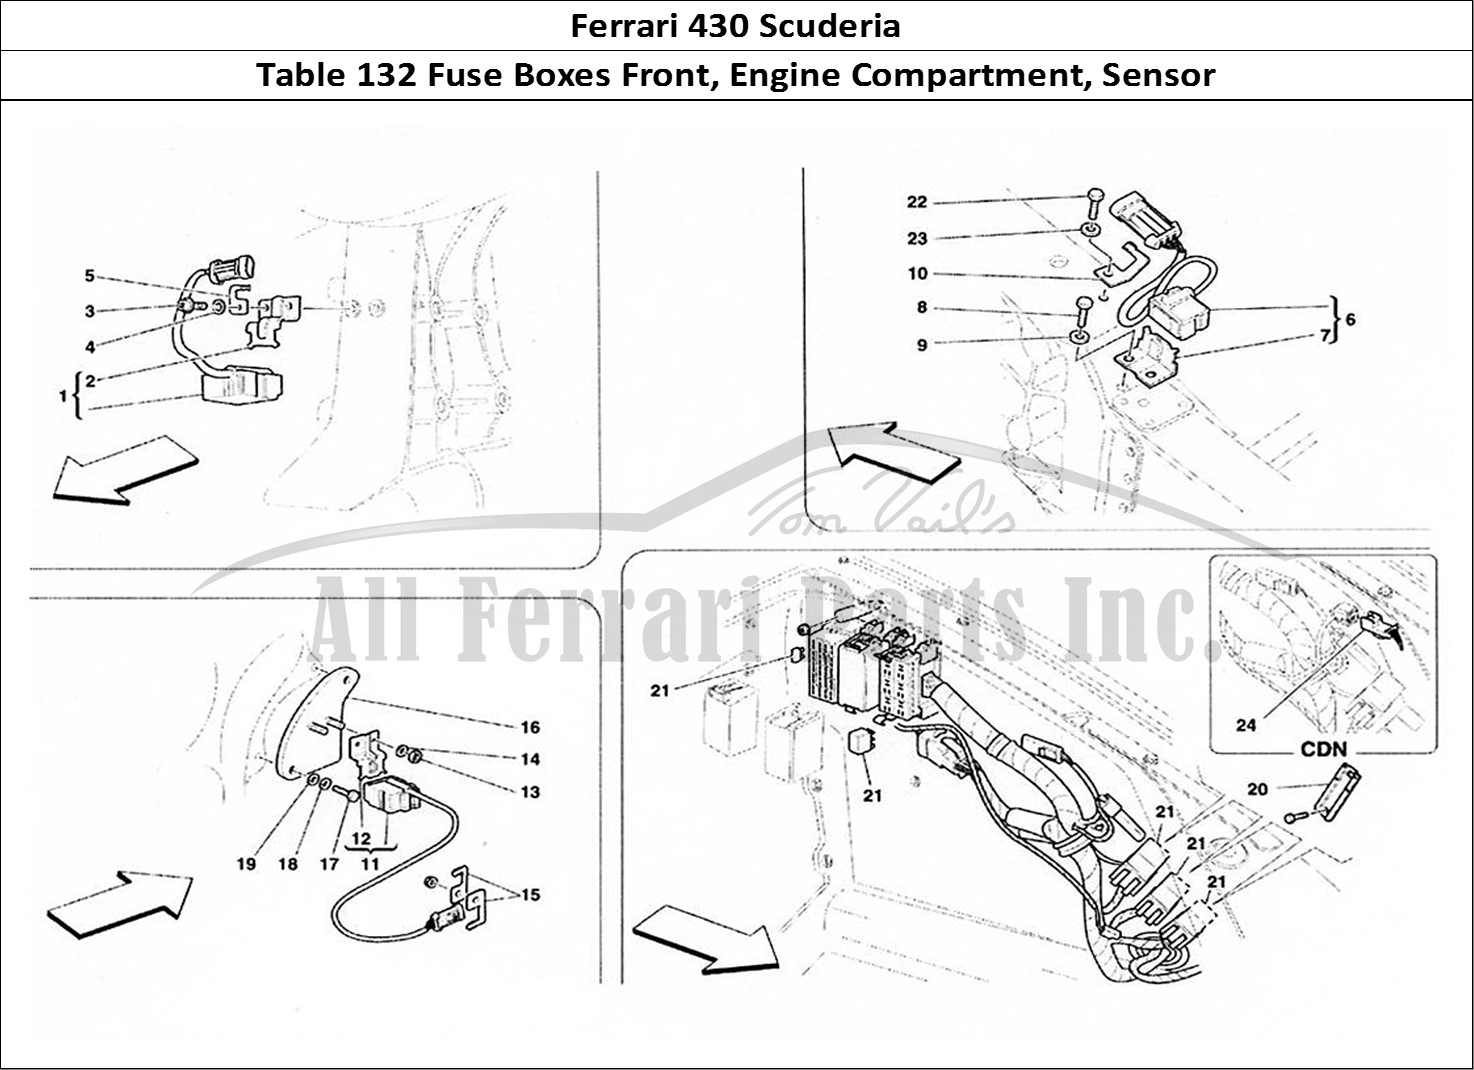 Ferrari 430 Fuse Box Diagram Vehicle Wiring Diagrams Scuderia Bodywork Table 132 Boxes Front Engine Partment Sensor